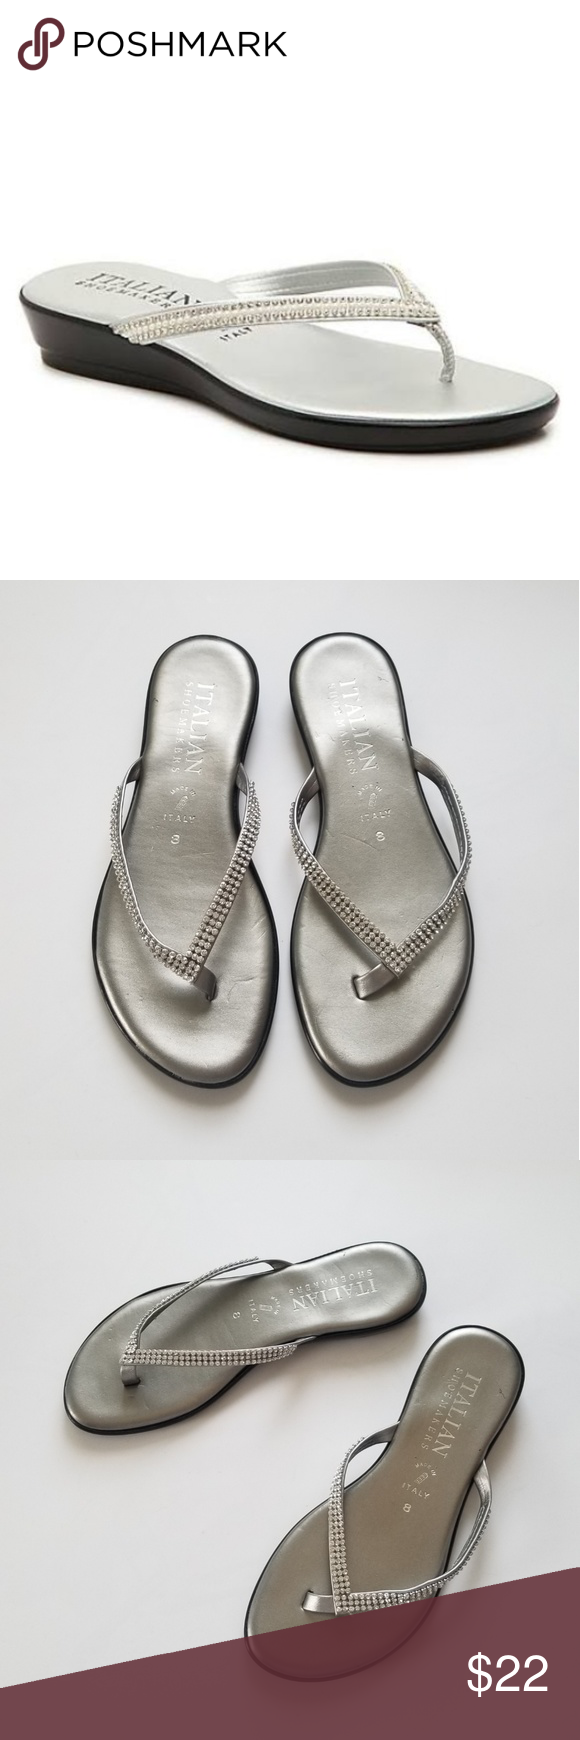 bd042804456 Women Medley Wedge Sandal -Silver Metallic This sandal silhouette is  fashioned with rhinestone straps and